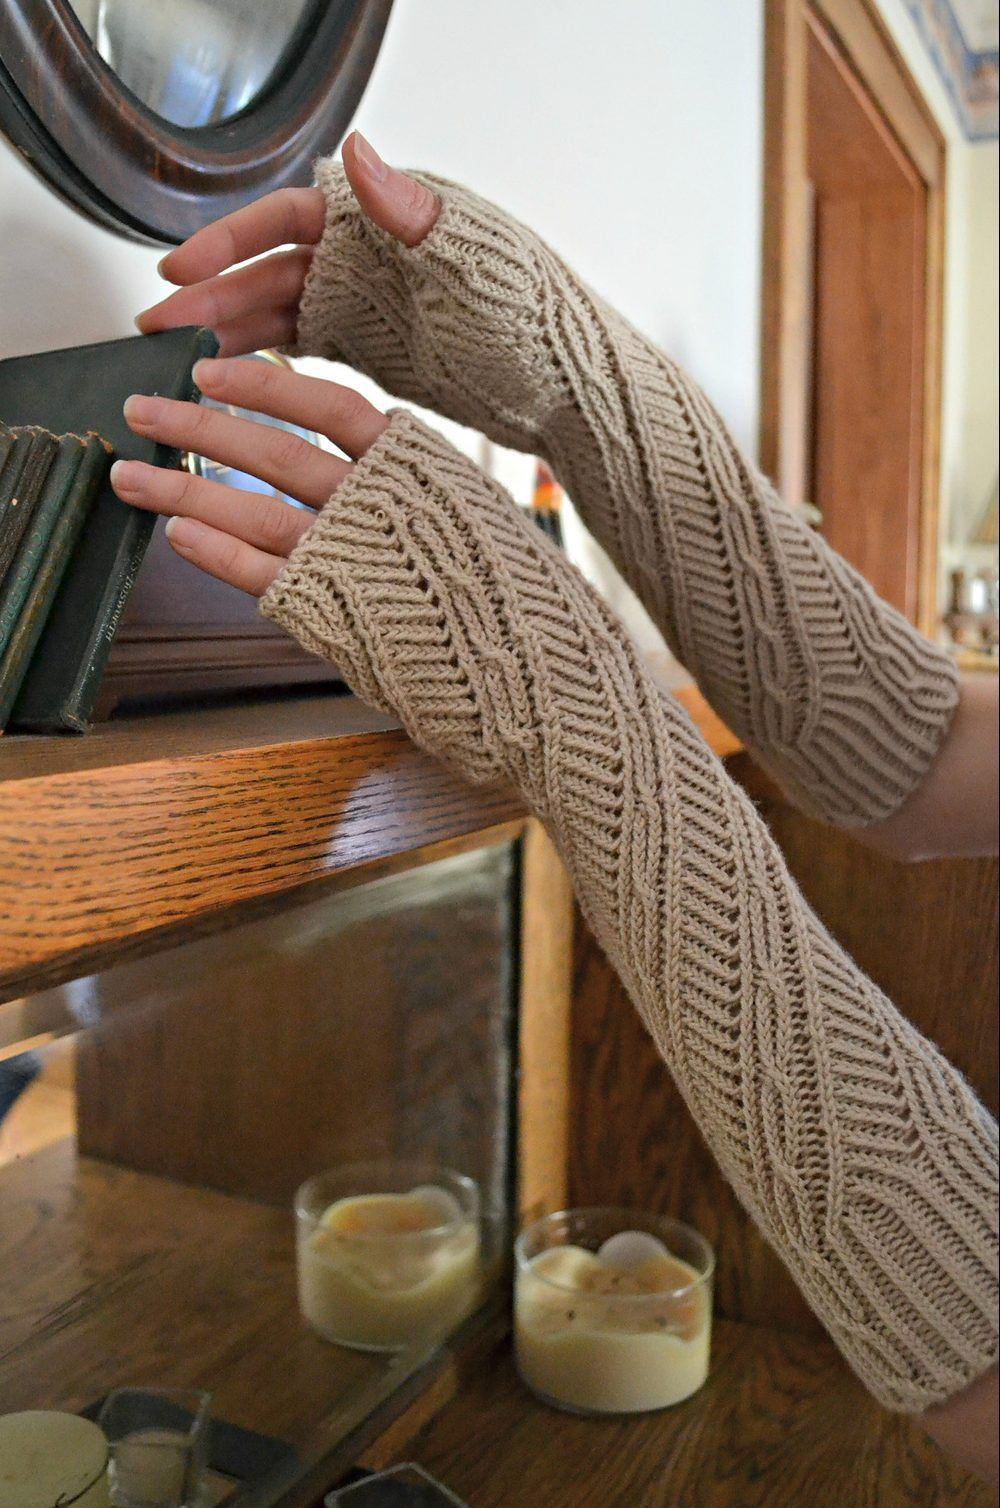 Twisty Mitts Knitting Patterns | Arm warmers, Knit patterns and Cable